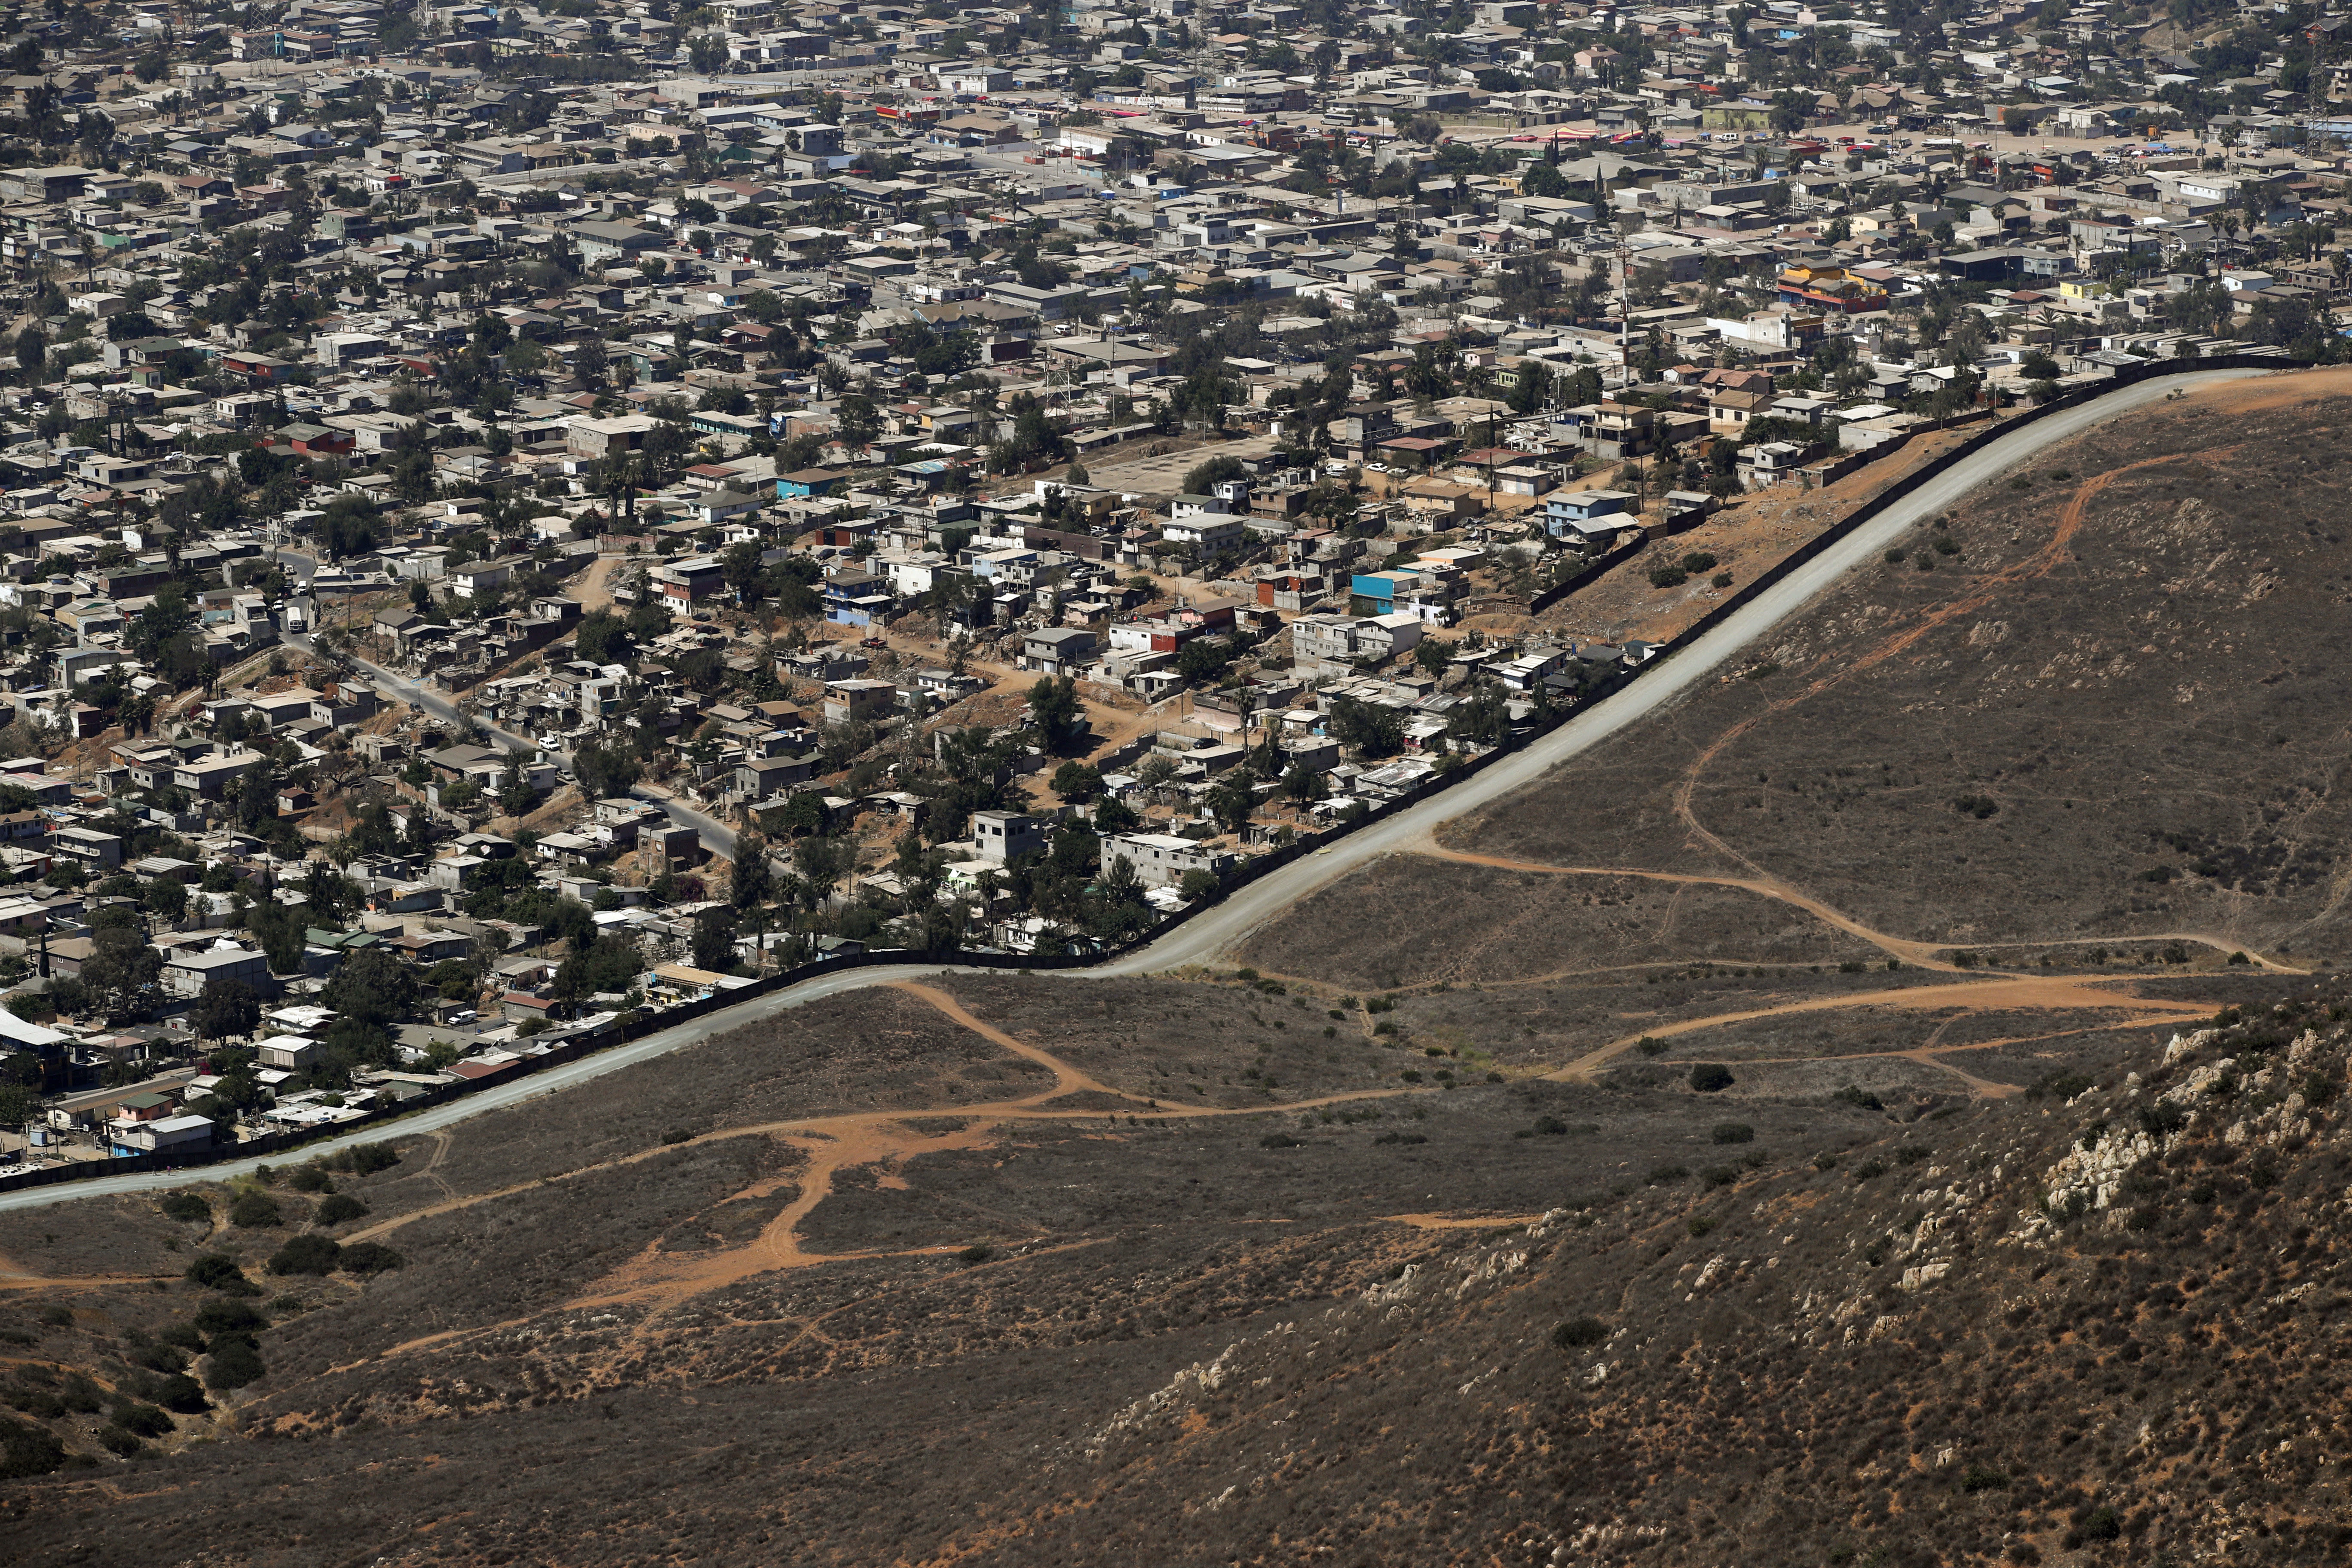 FILE - In this Thursday, June 28, 2018 file photo a road runs alongside a border wall that separates Tijuana, Mexico, top, from San Diego. The Tijuana and San Diego border crossing is the world's busiest land border crossing, but also now sees relatively few illegal crossings.(AP Photo/Jae C. Hong,File)